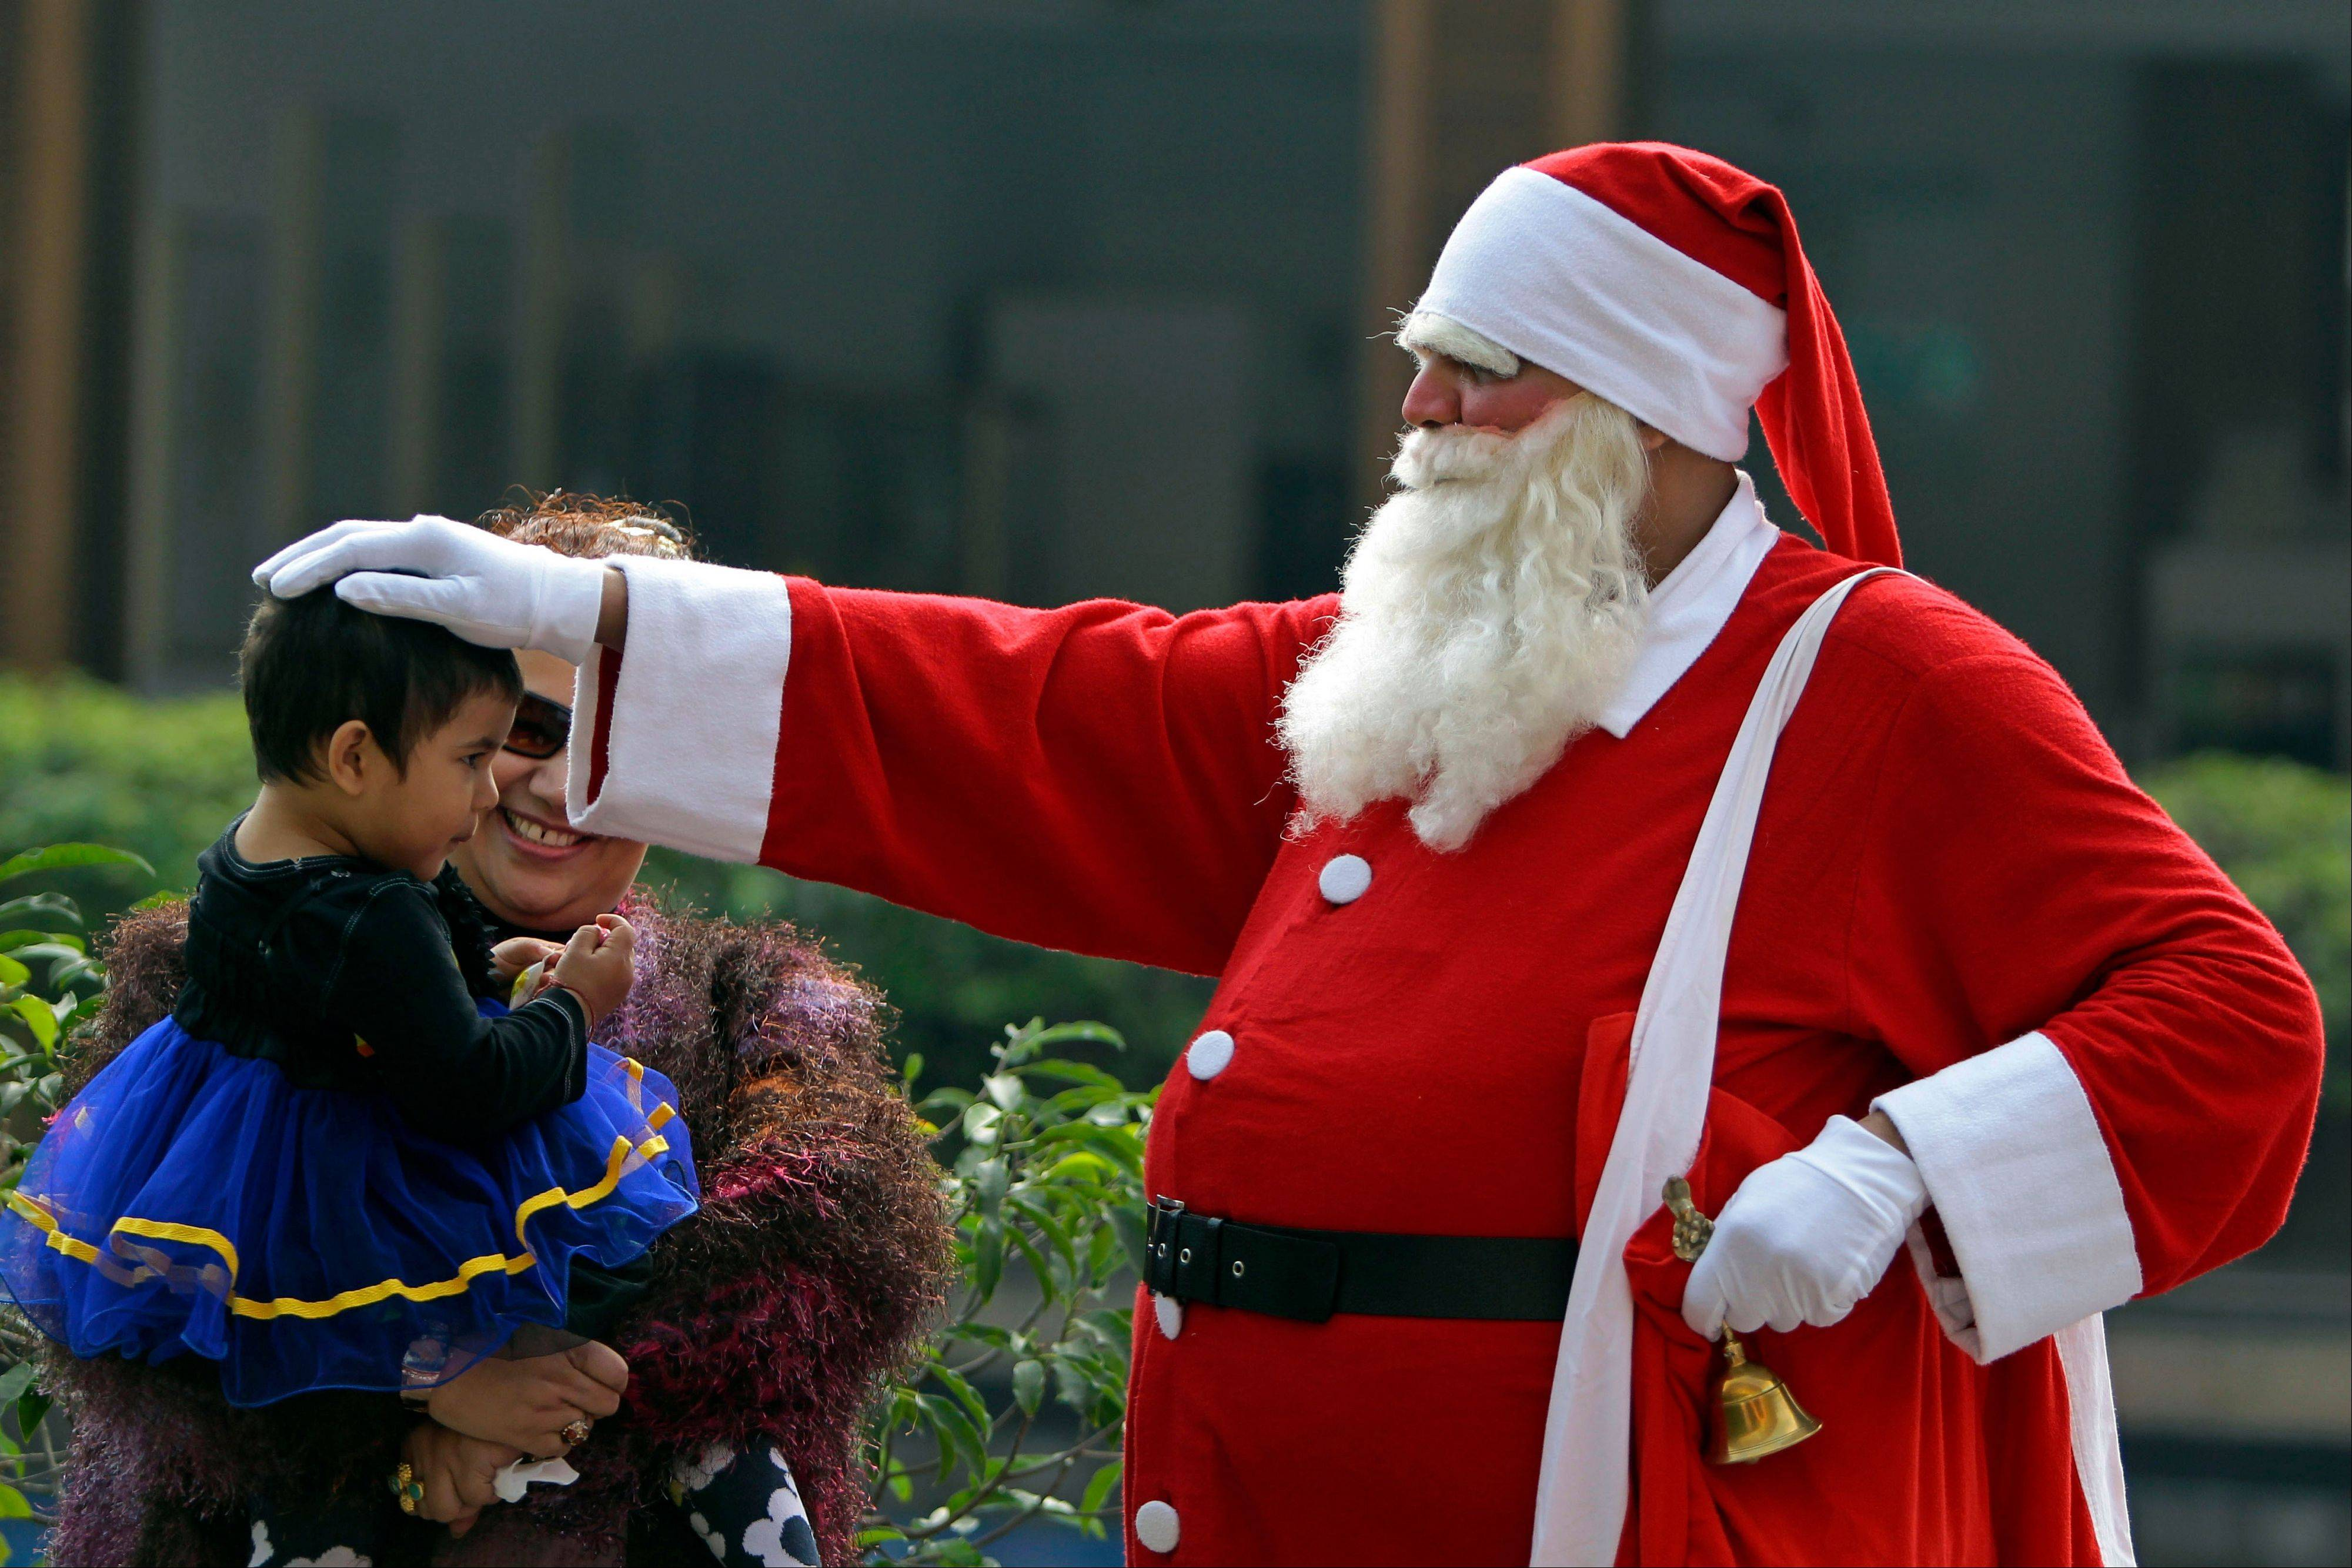 A man dressed as Santa Claus blesses a child at a Christmas Day party in Dhaka, Bangladesh, Tuesday, Dec. 25, 2012.